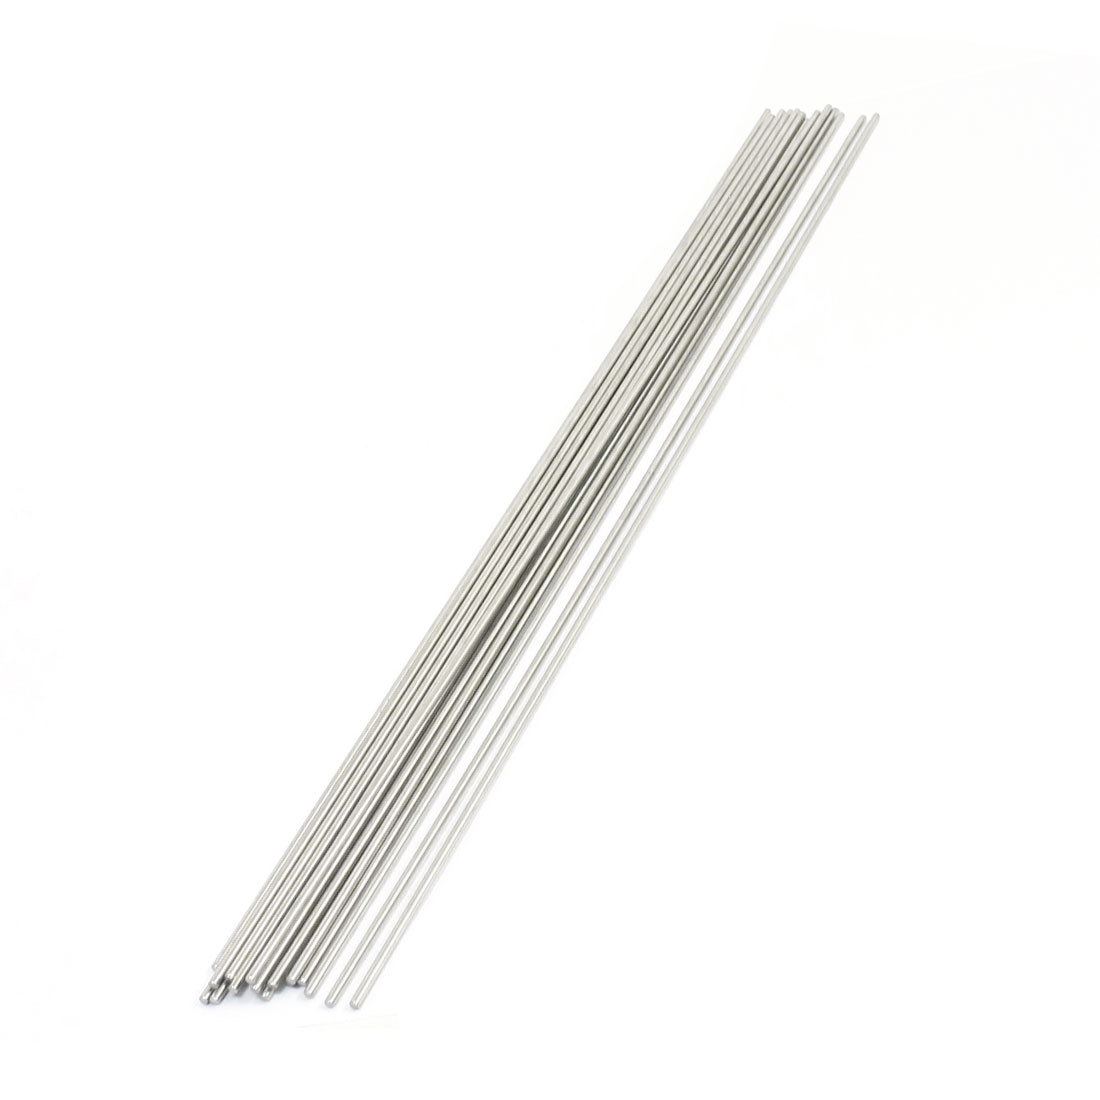 20PCS 300mm x 2mm Stainless Steel Round Rod Axle Bars for RC Toys